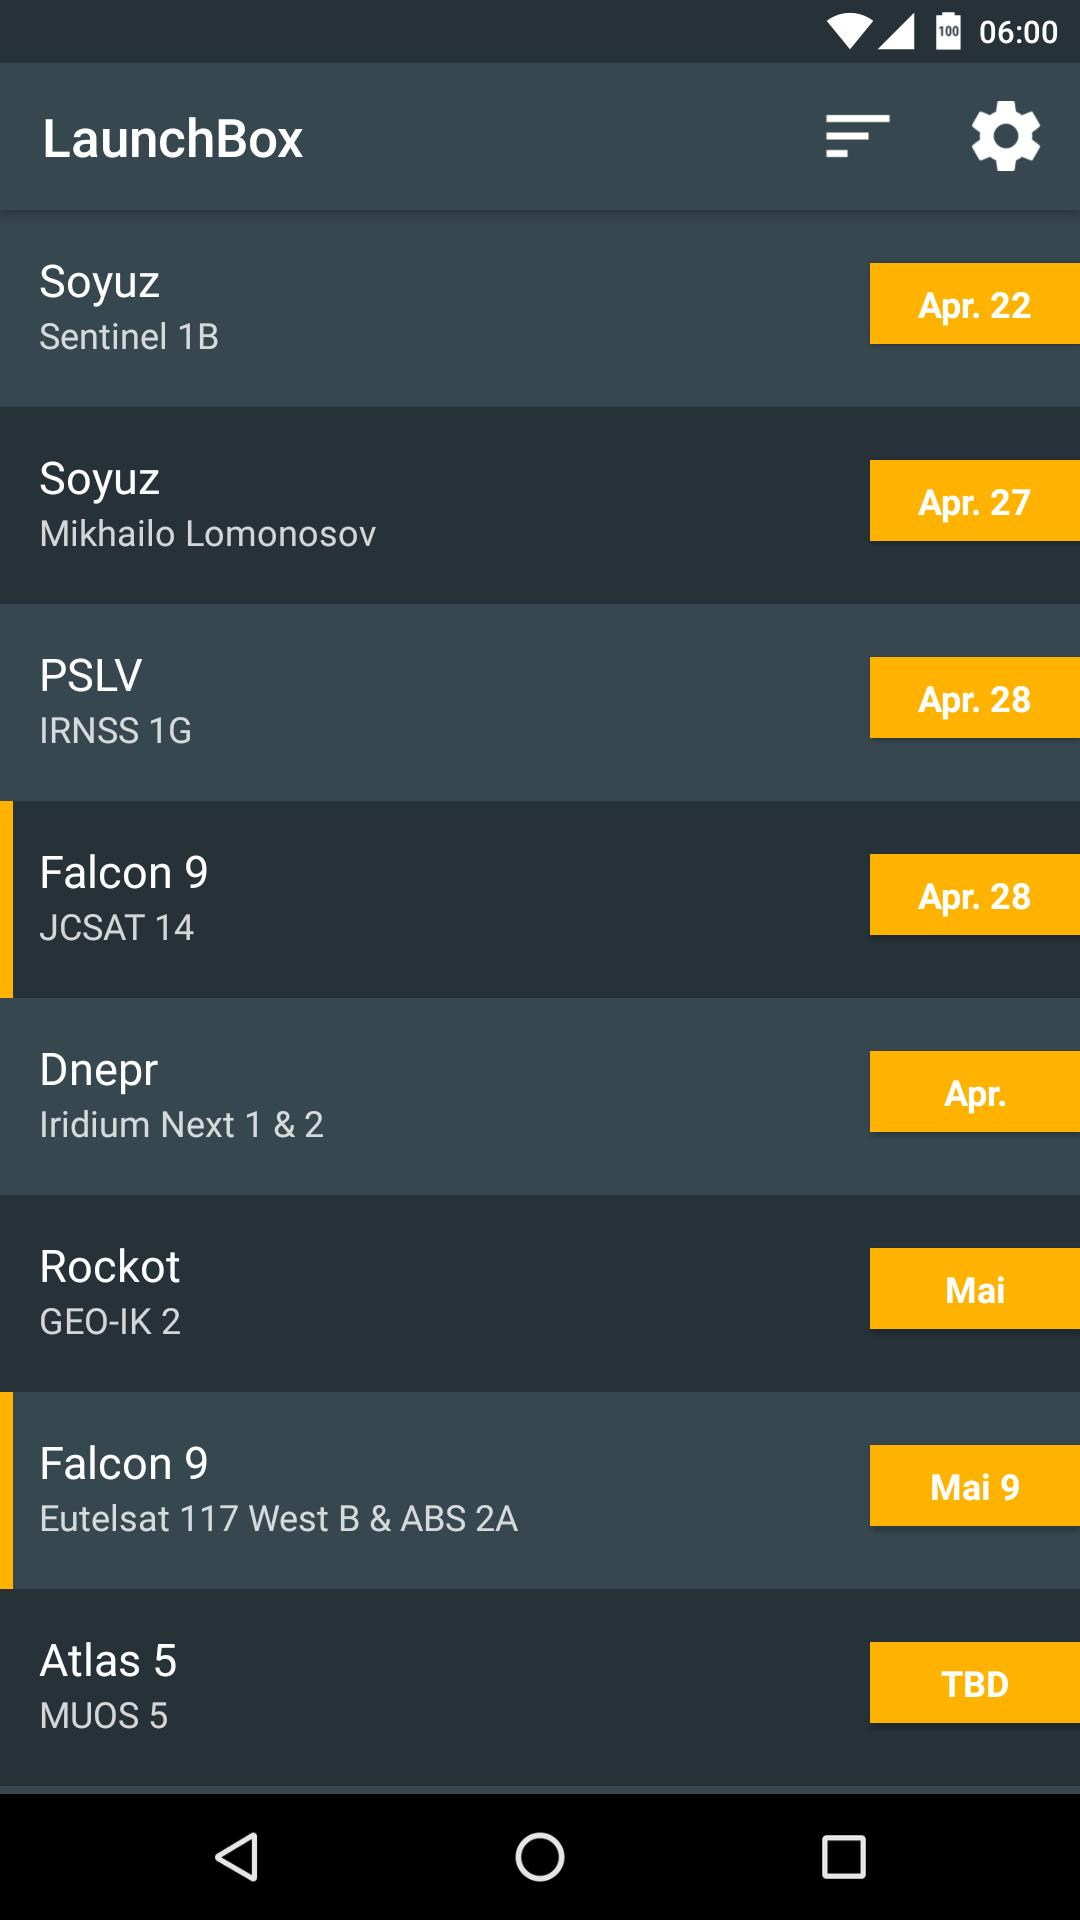 LaunchBox - Launch Schedule for Android - APK Download